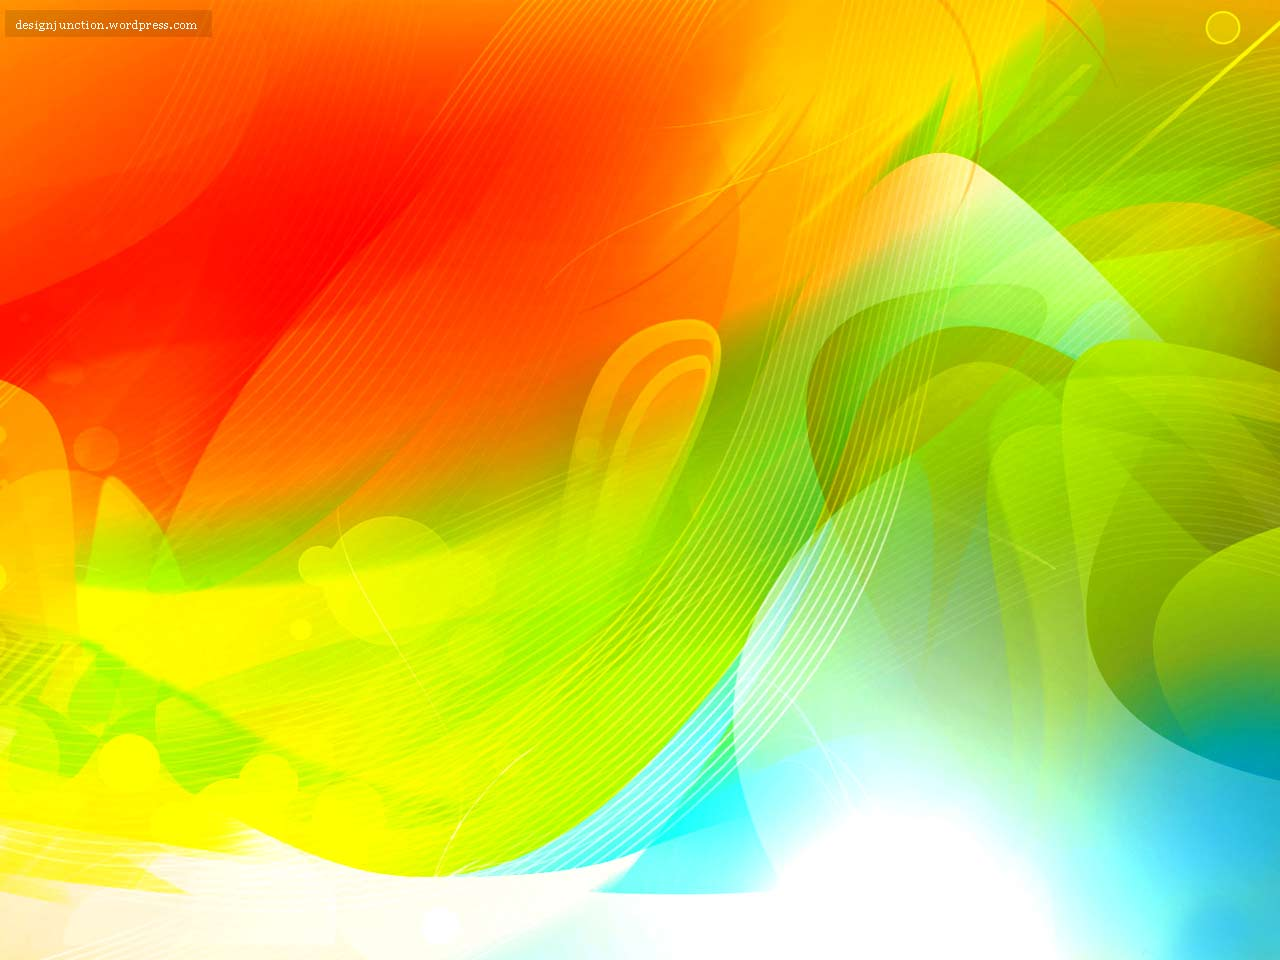 Graphic wallpaper  1280x960  #44425